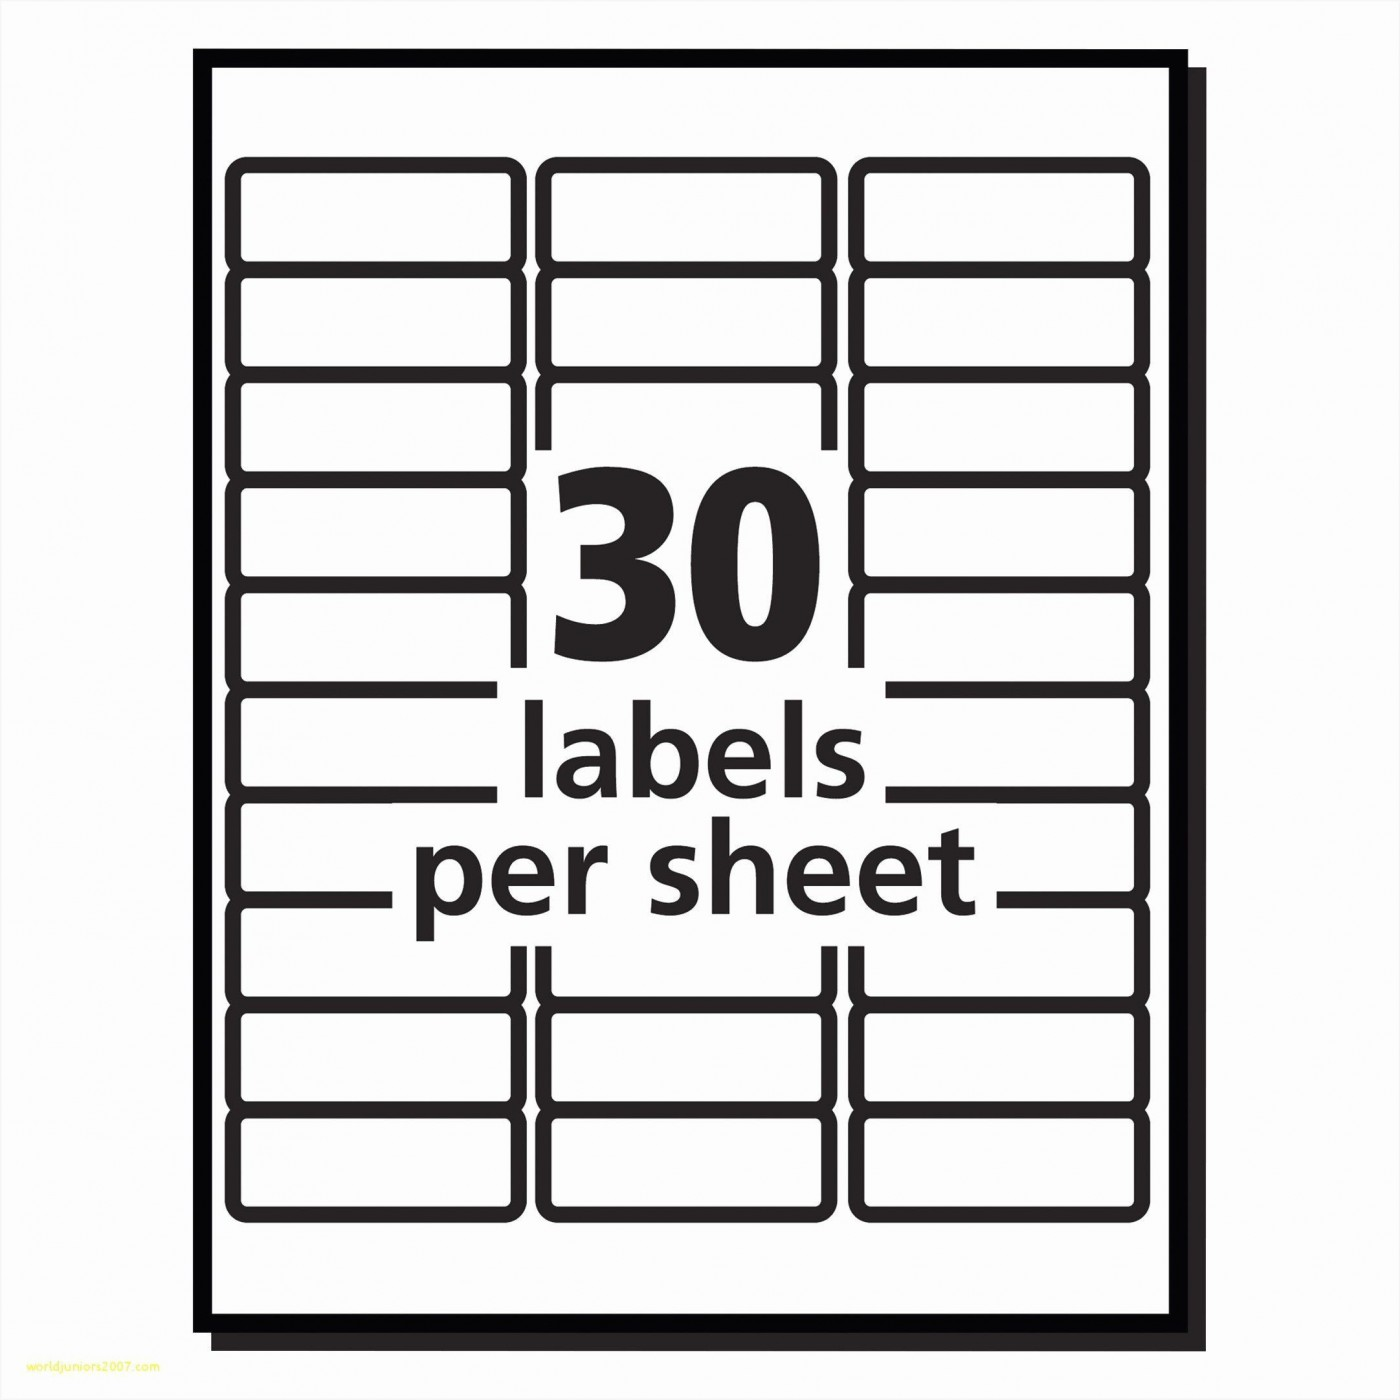 006 Simple Addres Label Template For Mac High Definition  Page Avery 5160 Word1400